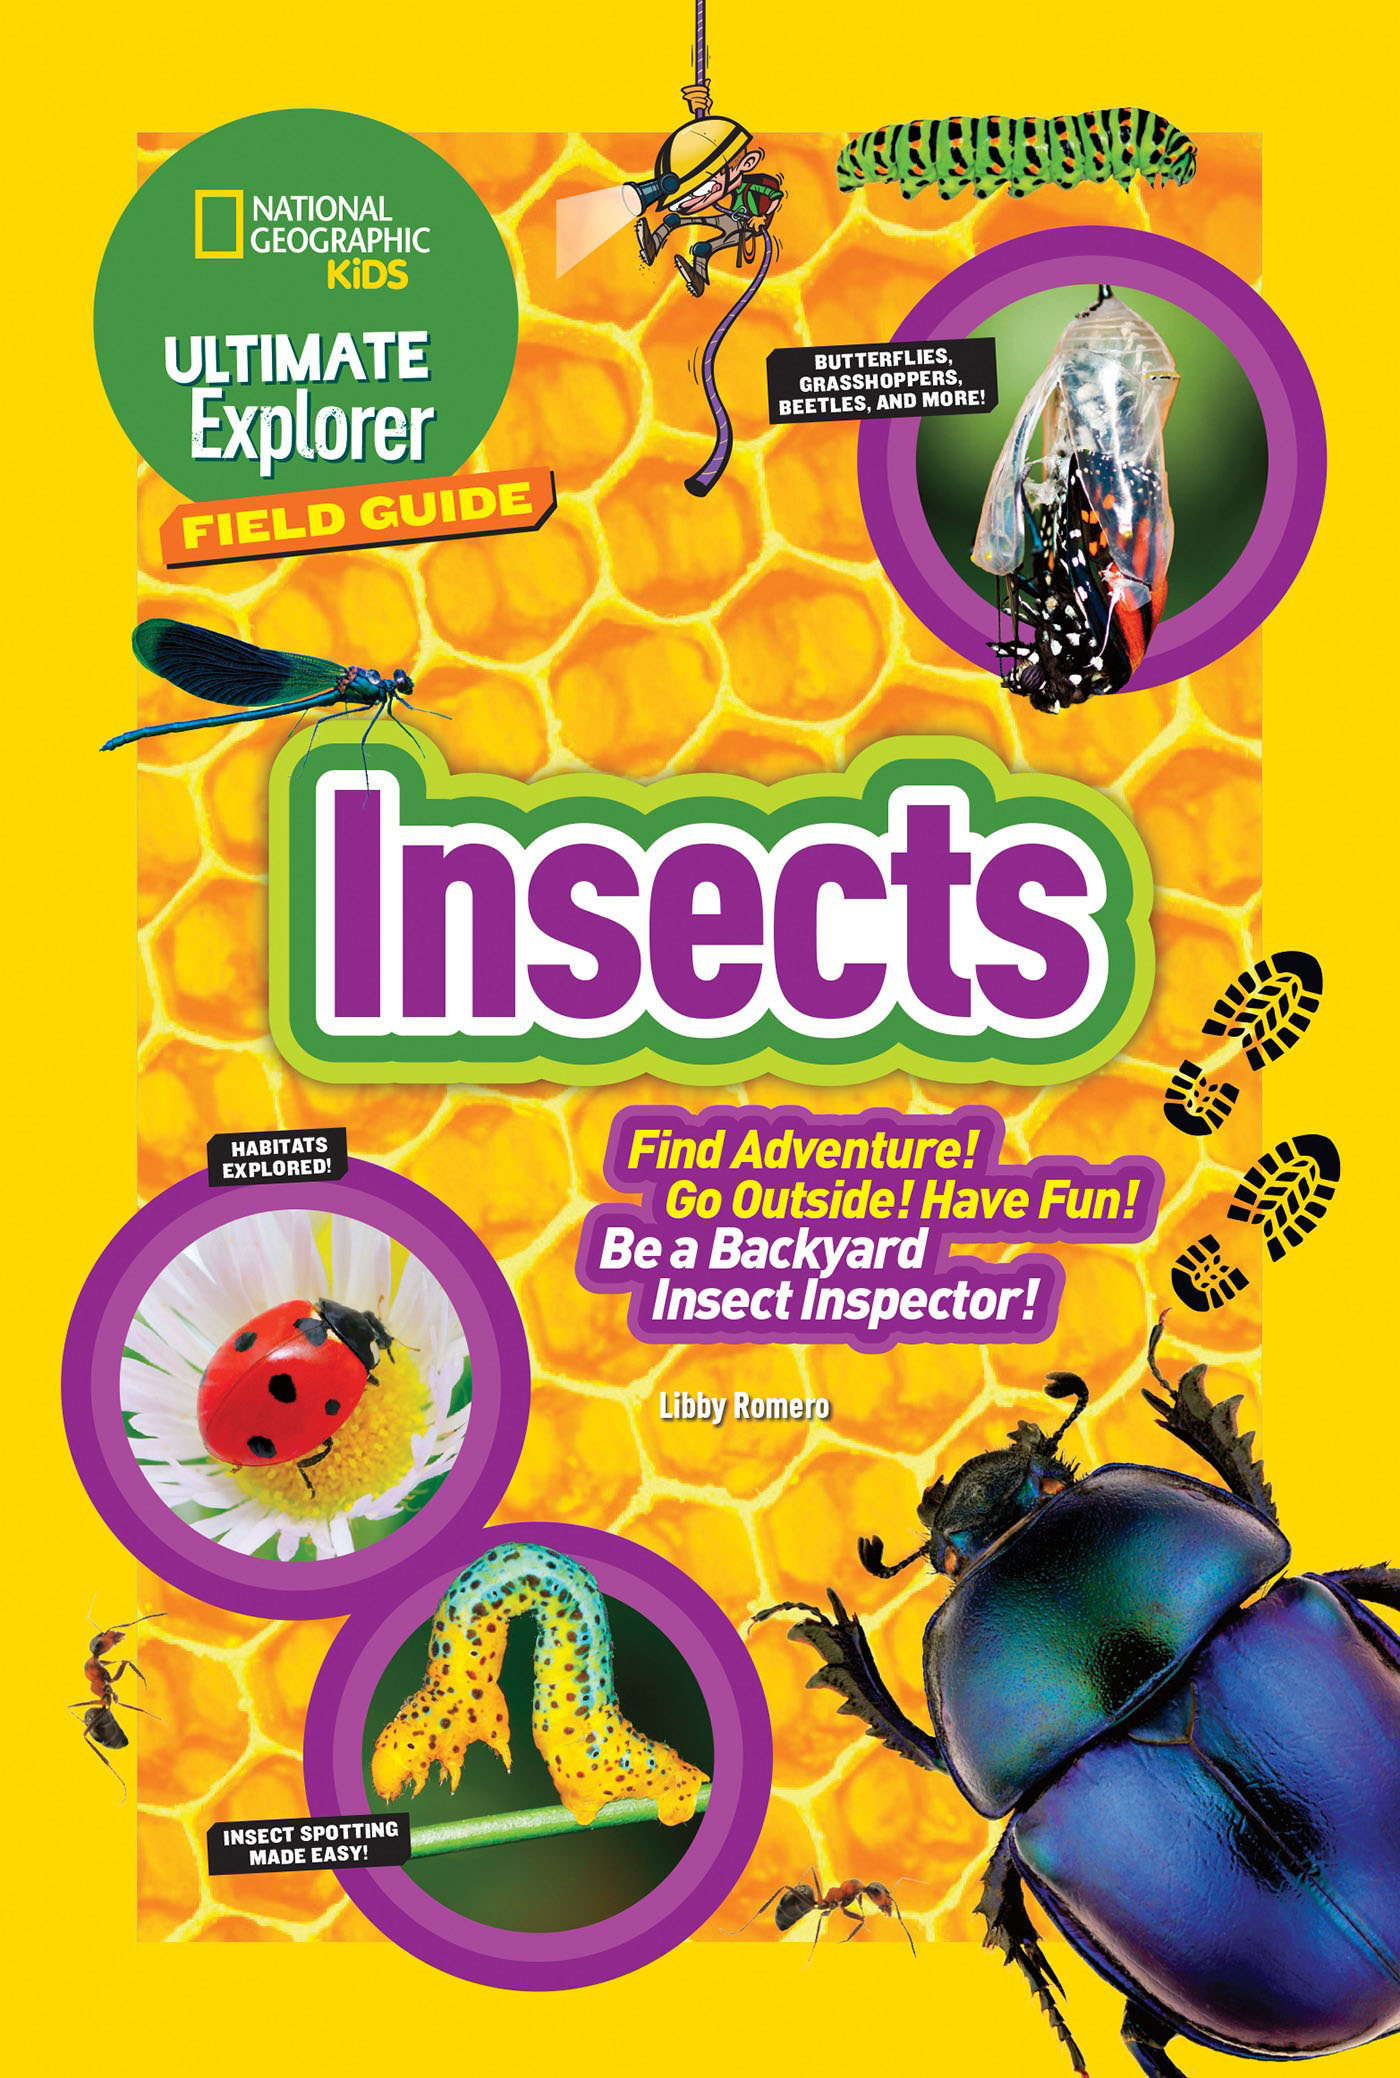 Ultimate Explorer Field Guide: Insects for ds3200 ds3300 ds3400 exp3000 42c2140 42c2192 42c2141 tested good and contact us for right photo